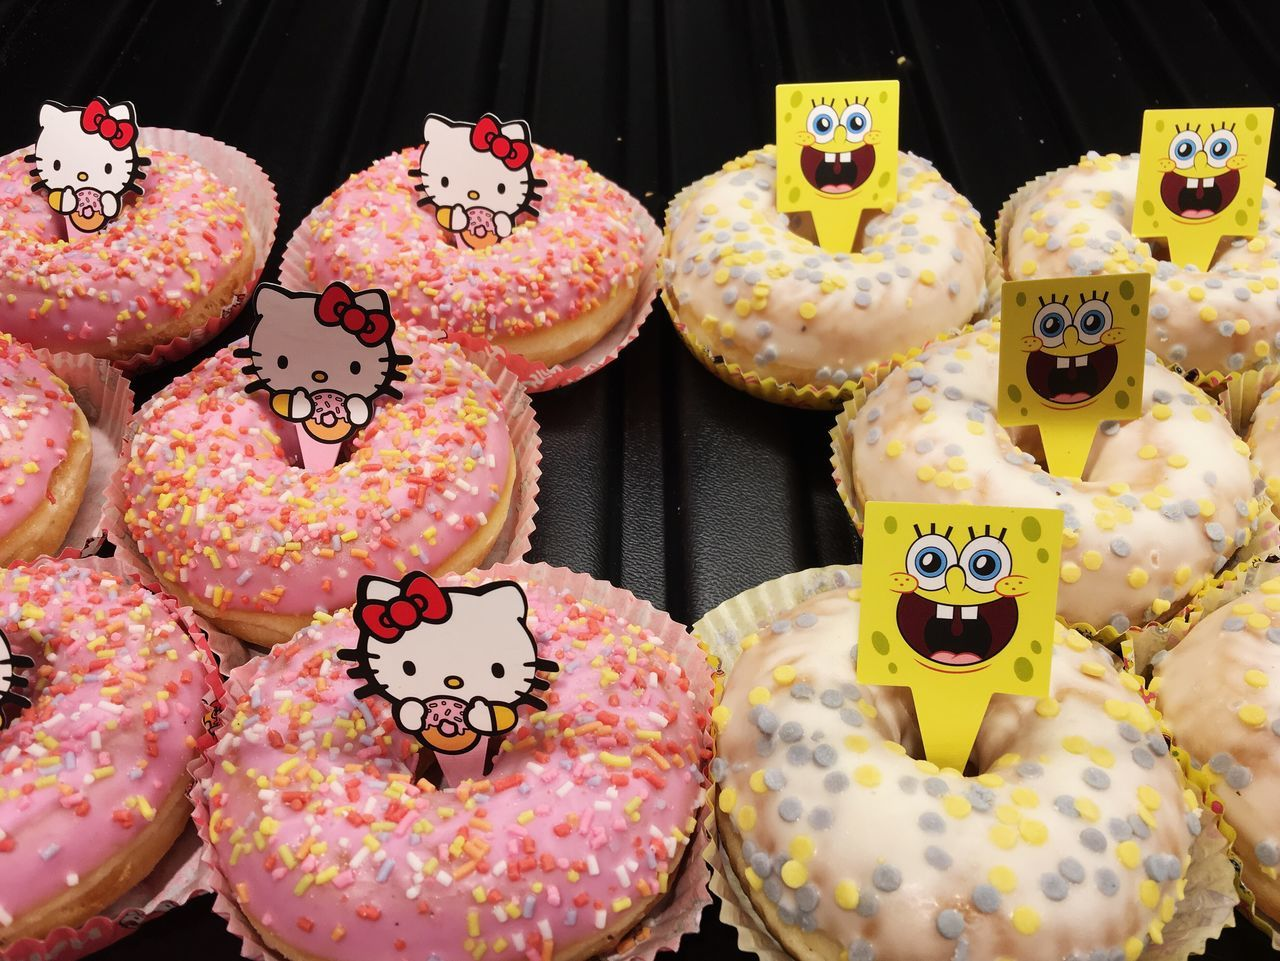 Happy donuts... Sweet Food Food And Drink Unhealthy Eating Sprinkles Dessert Donut Cupcake Freshness Ready-to-eat Dessert Topping Temptation Food Baked Spongebob Hellokitty Yellow Pink Color Yellow Color Close-up Tasty Yummy Found On The Roll Vscocam Details Of My Life Always Be Cozy